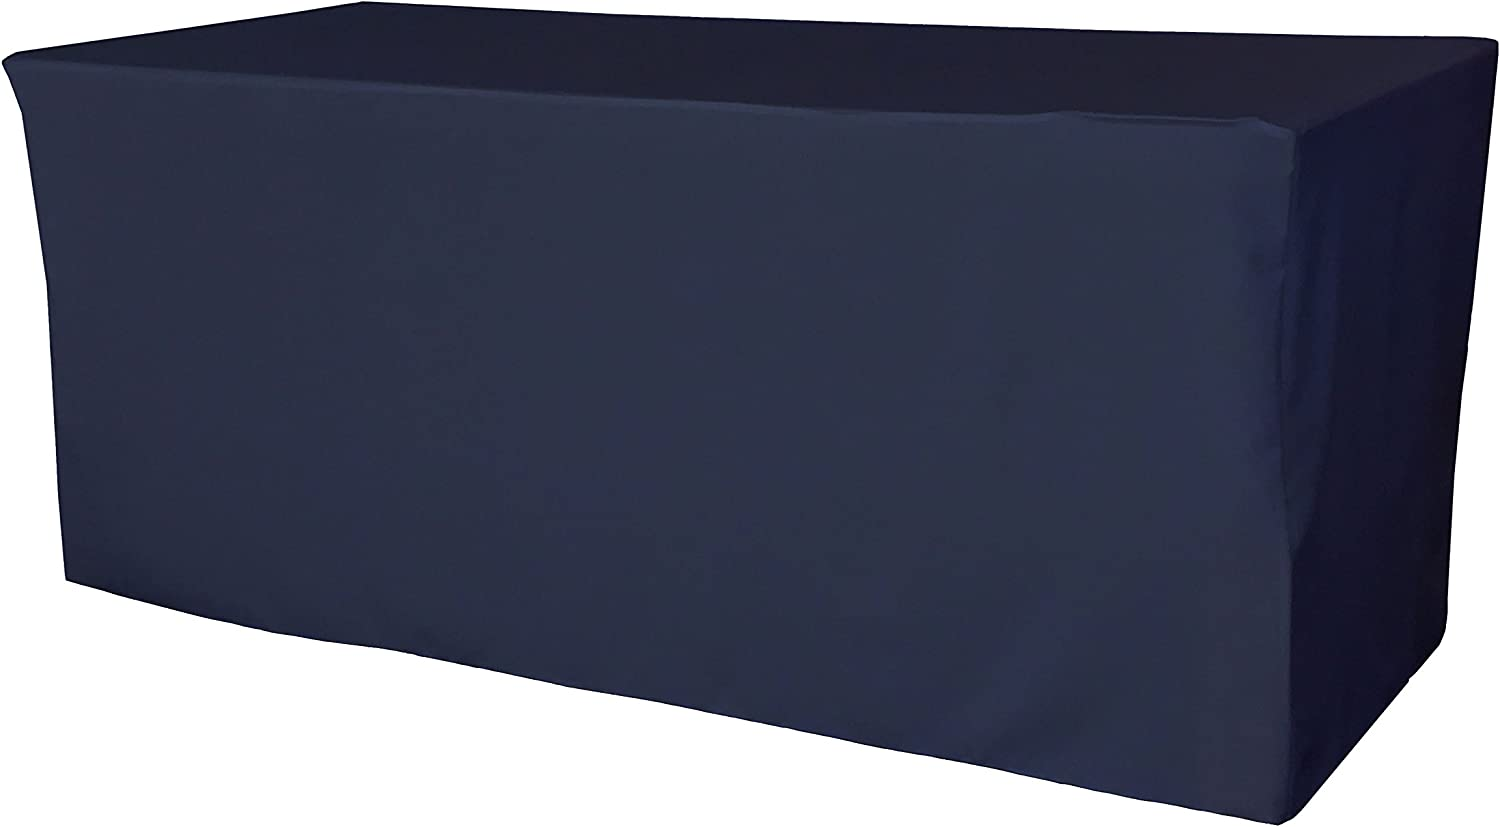 LA Linen Polyester Poplin Fitted Tablecloth 72 L x 24 W x 30 H, Navy bluee